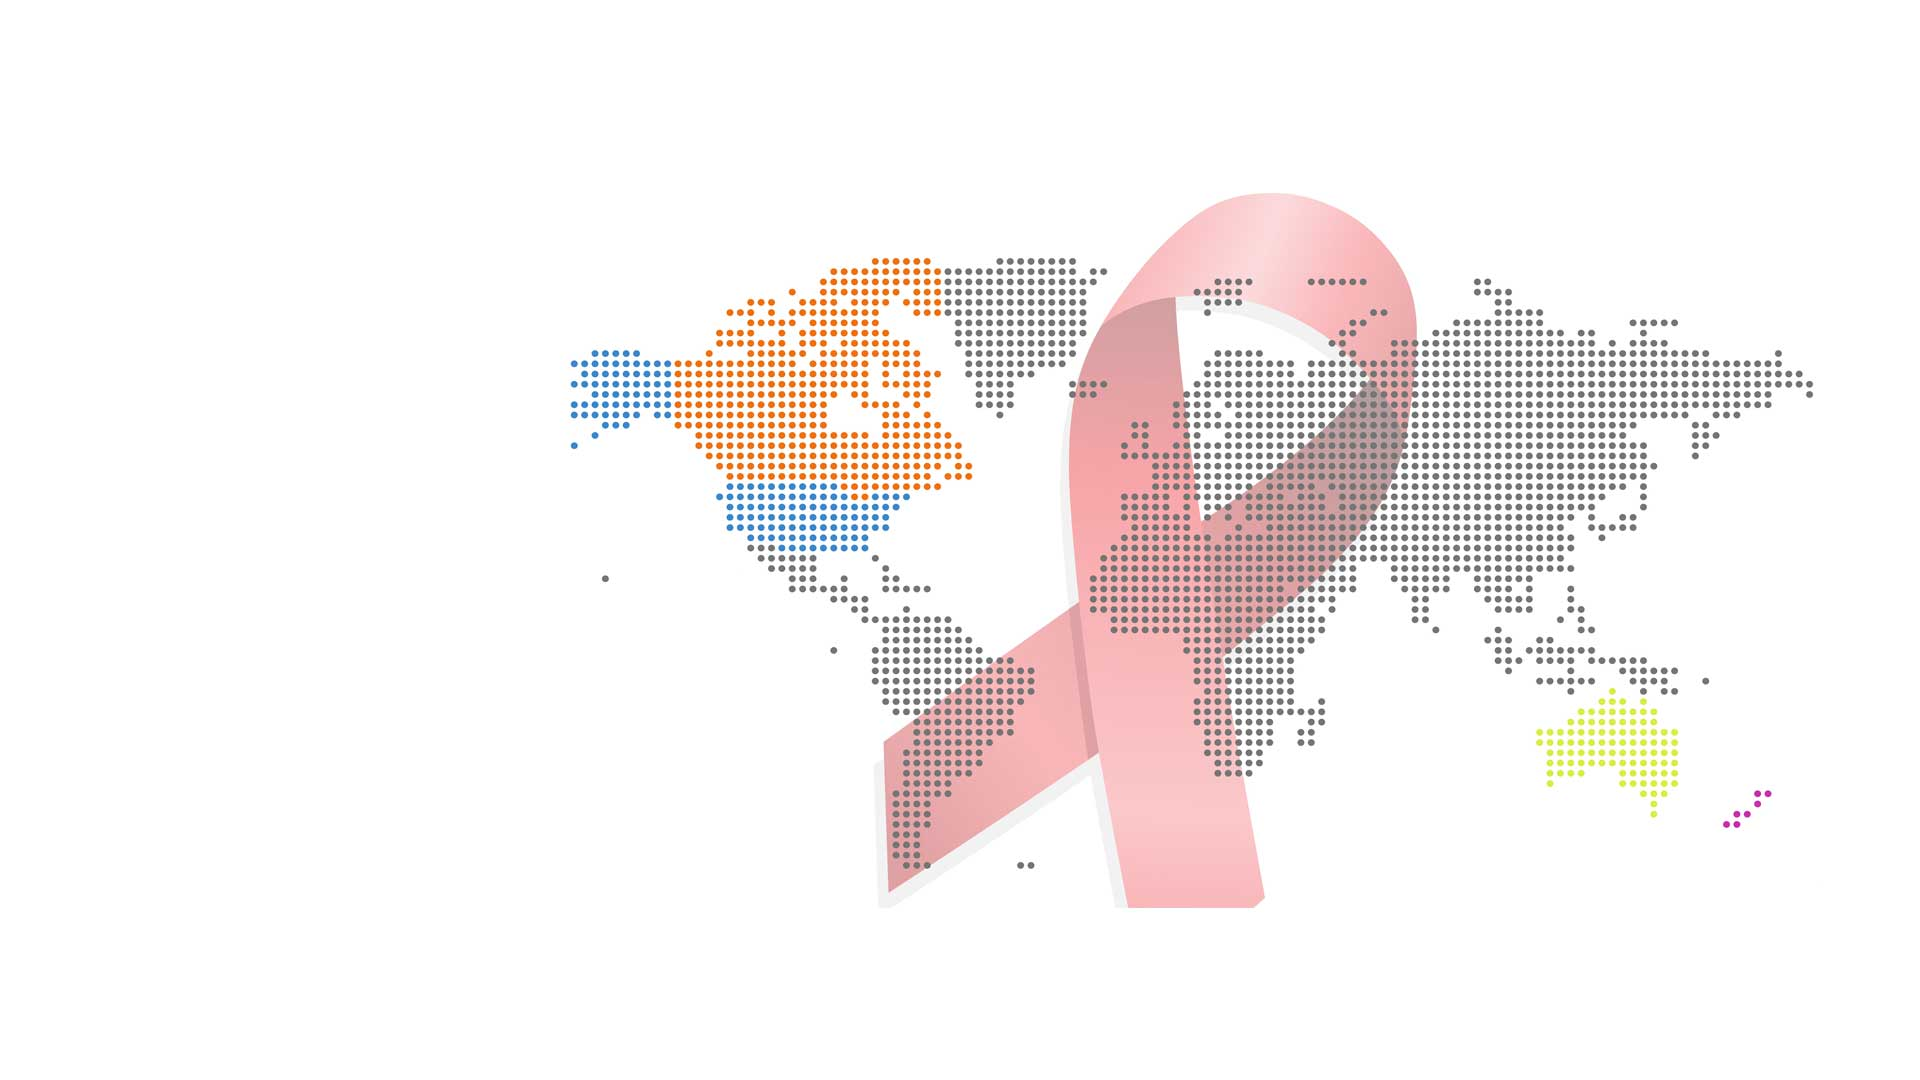 http://bccfe.ca/sites/default/files/revslider/image/BC-CfE-researchers-examine-HIV-diagnoses-rates-among-Indigenous-peoples-worldwide-carousel.jpg